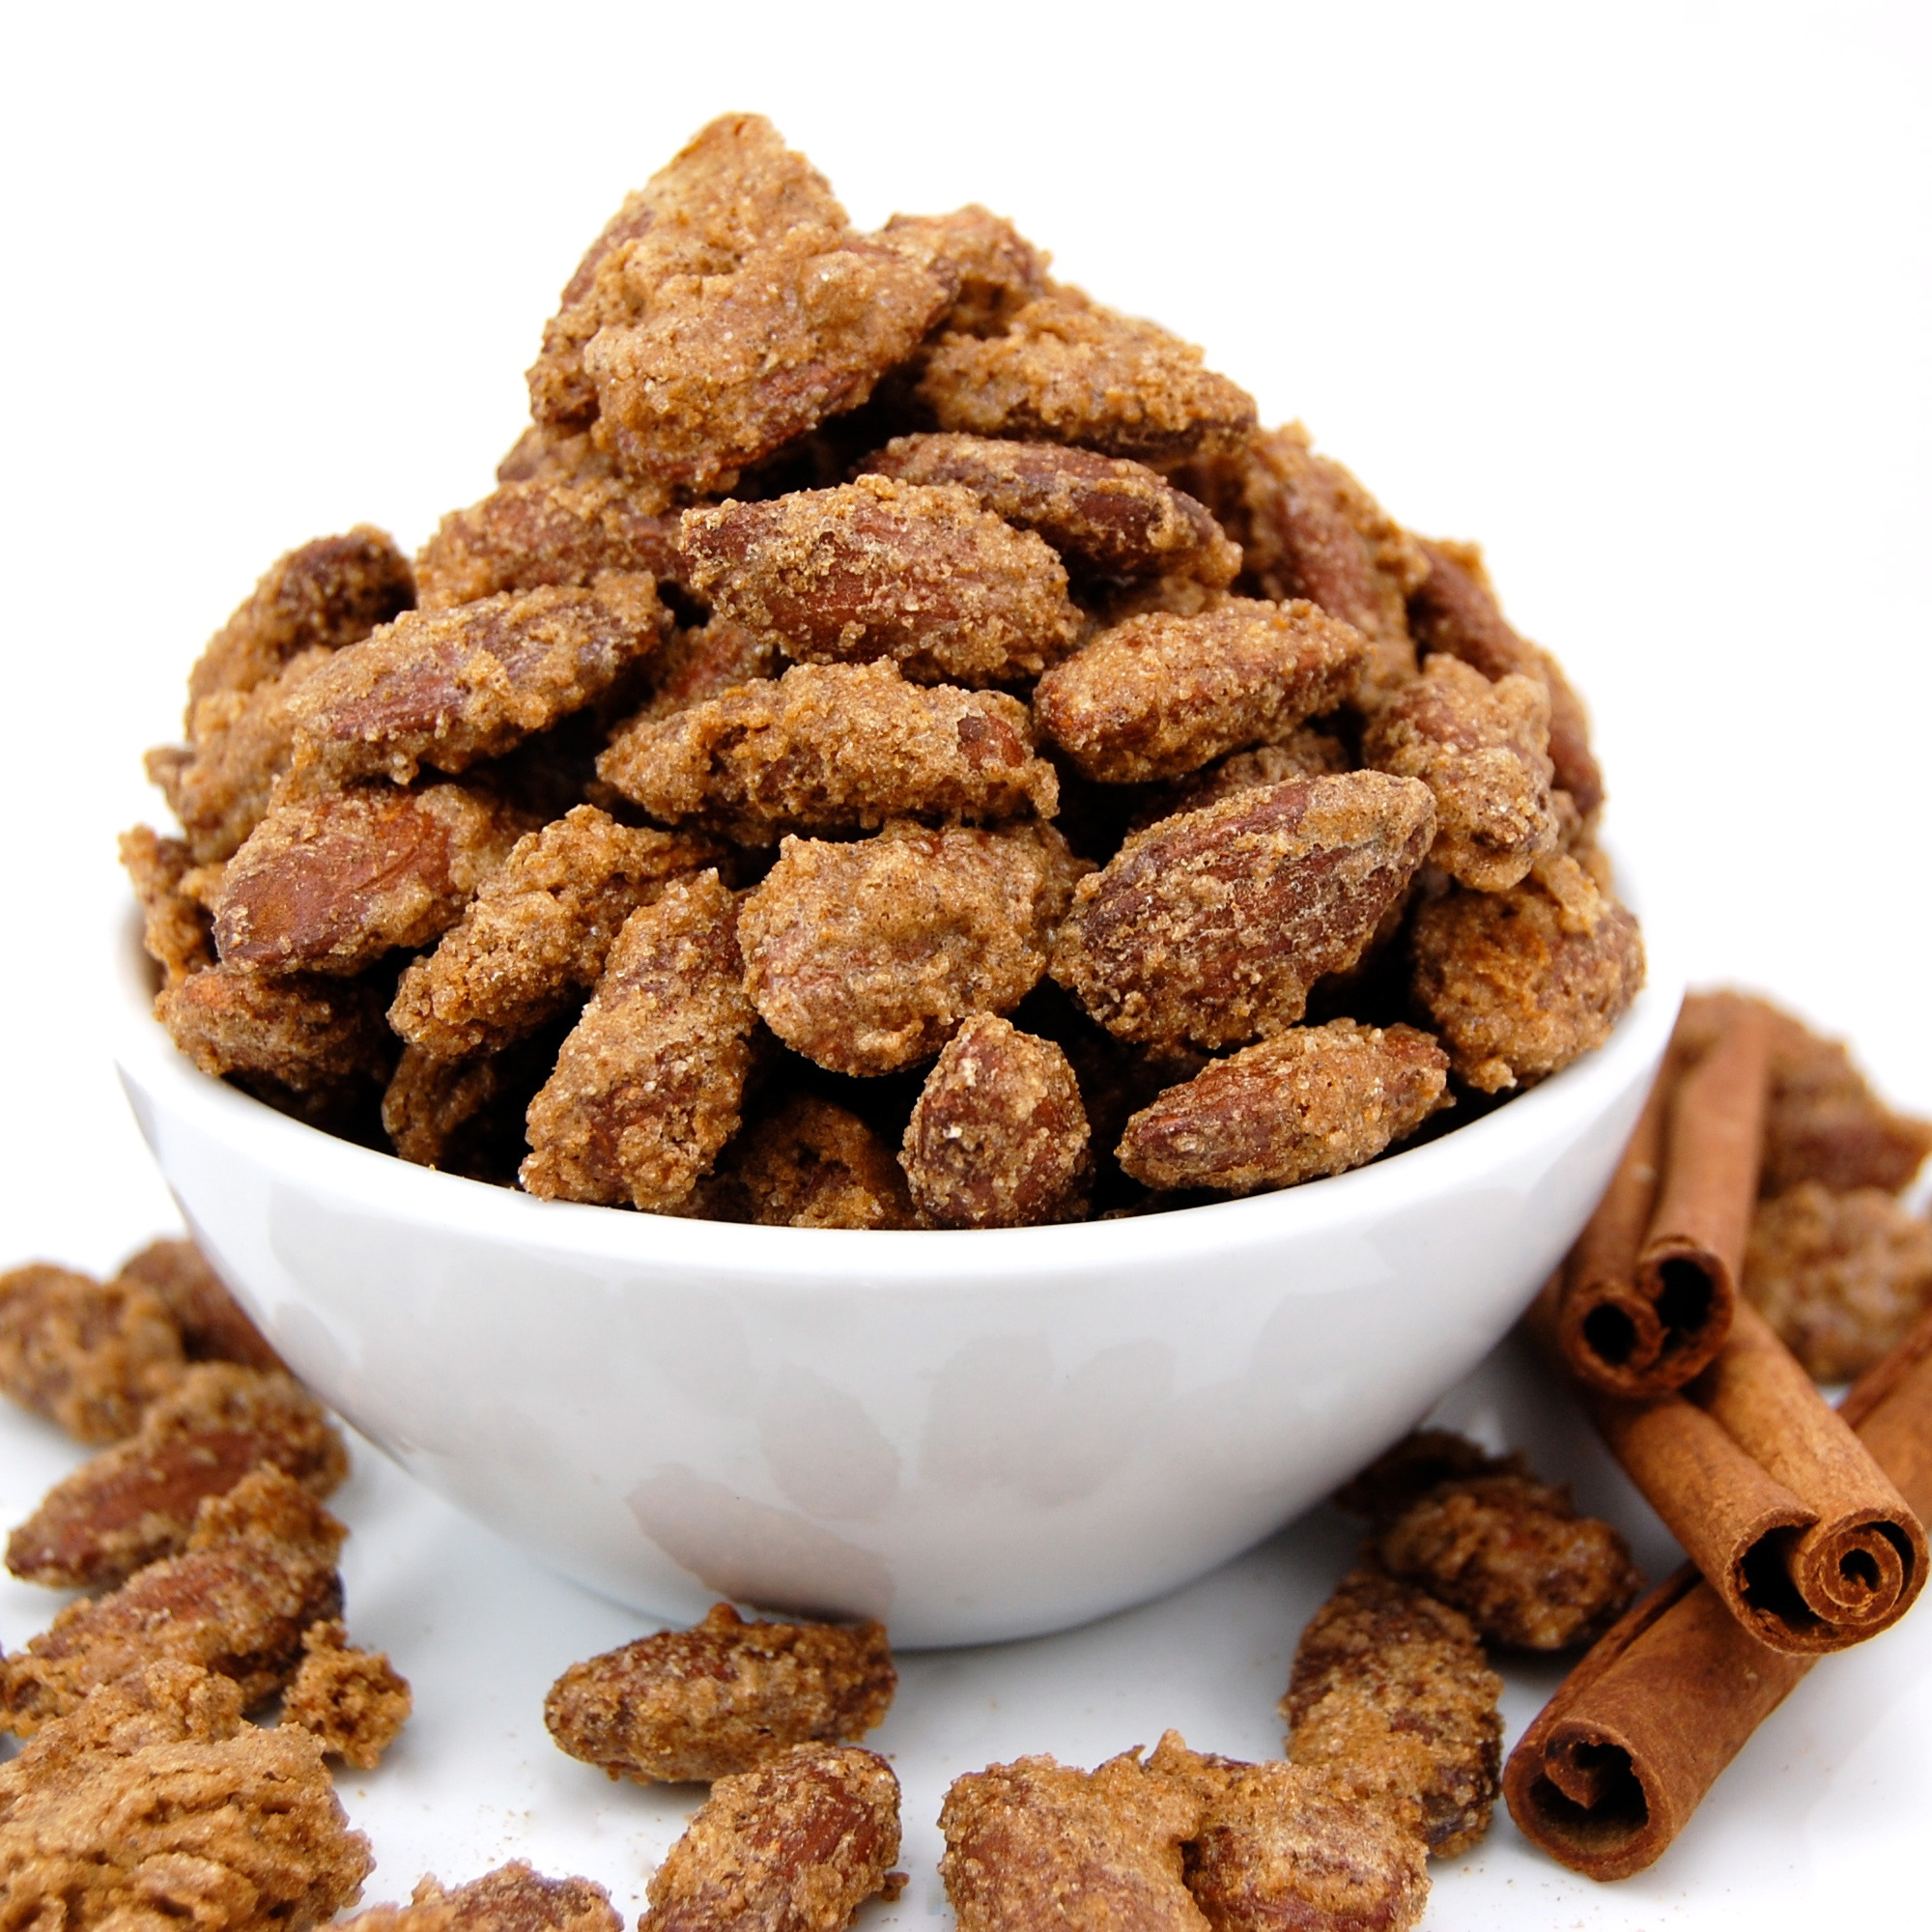 Cinnamon-Toasted Almonds